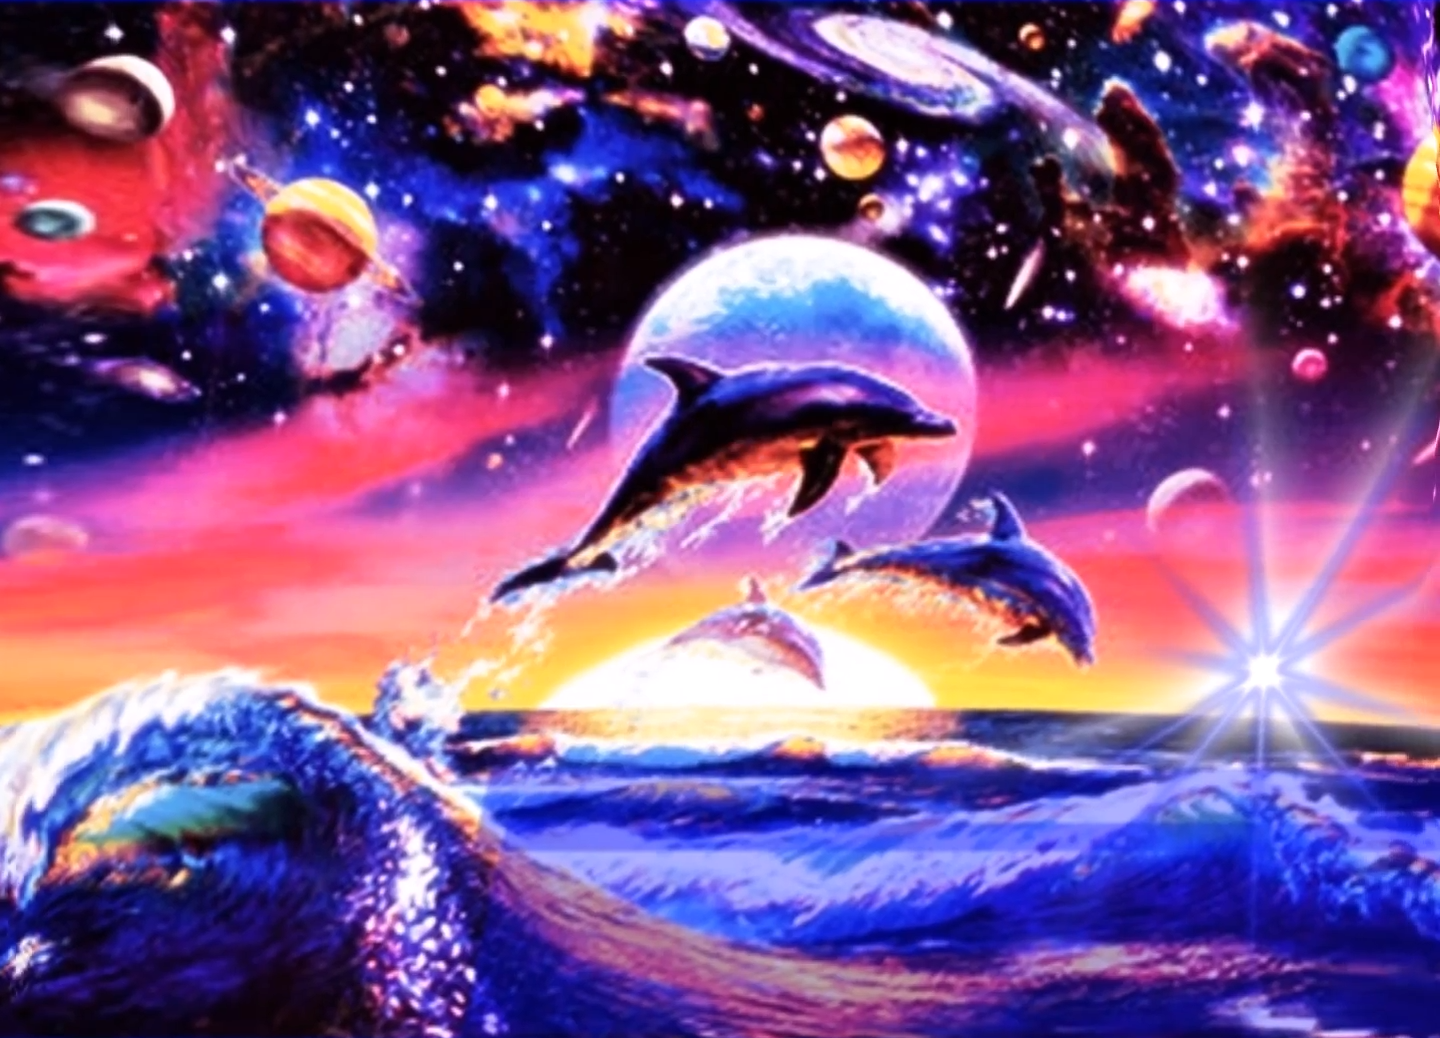 [dolphins_are_celestial_beings.0]